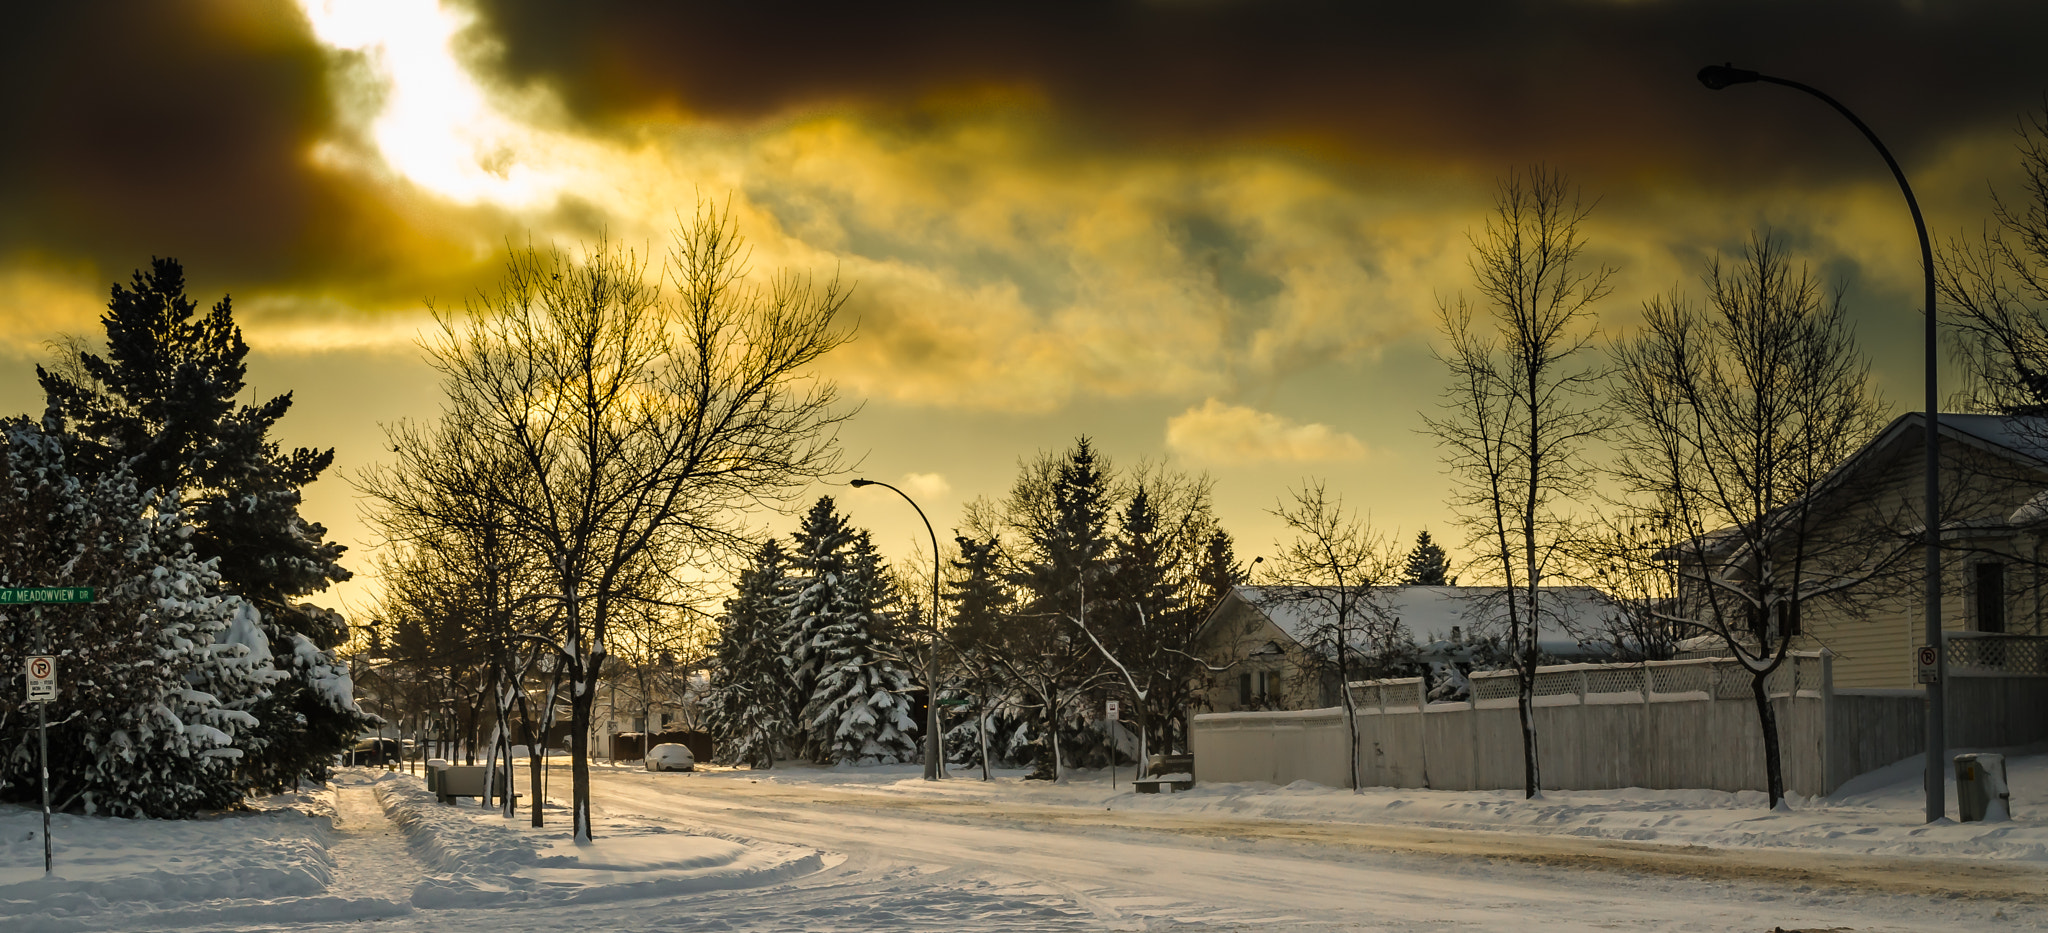 Photograph The End of My Street by Witty Sandle on 500px